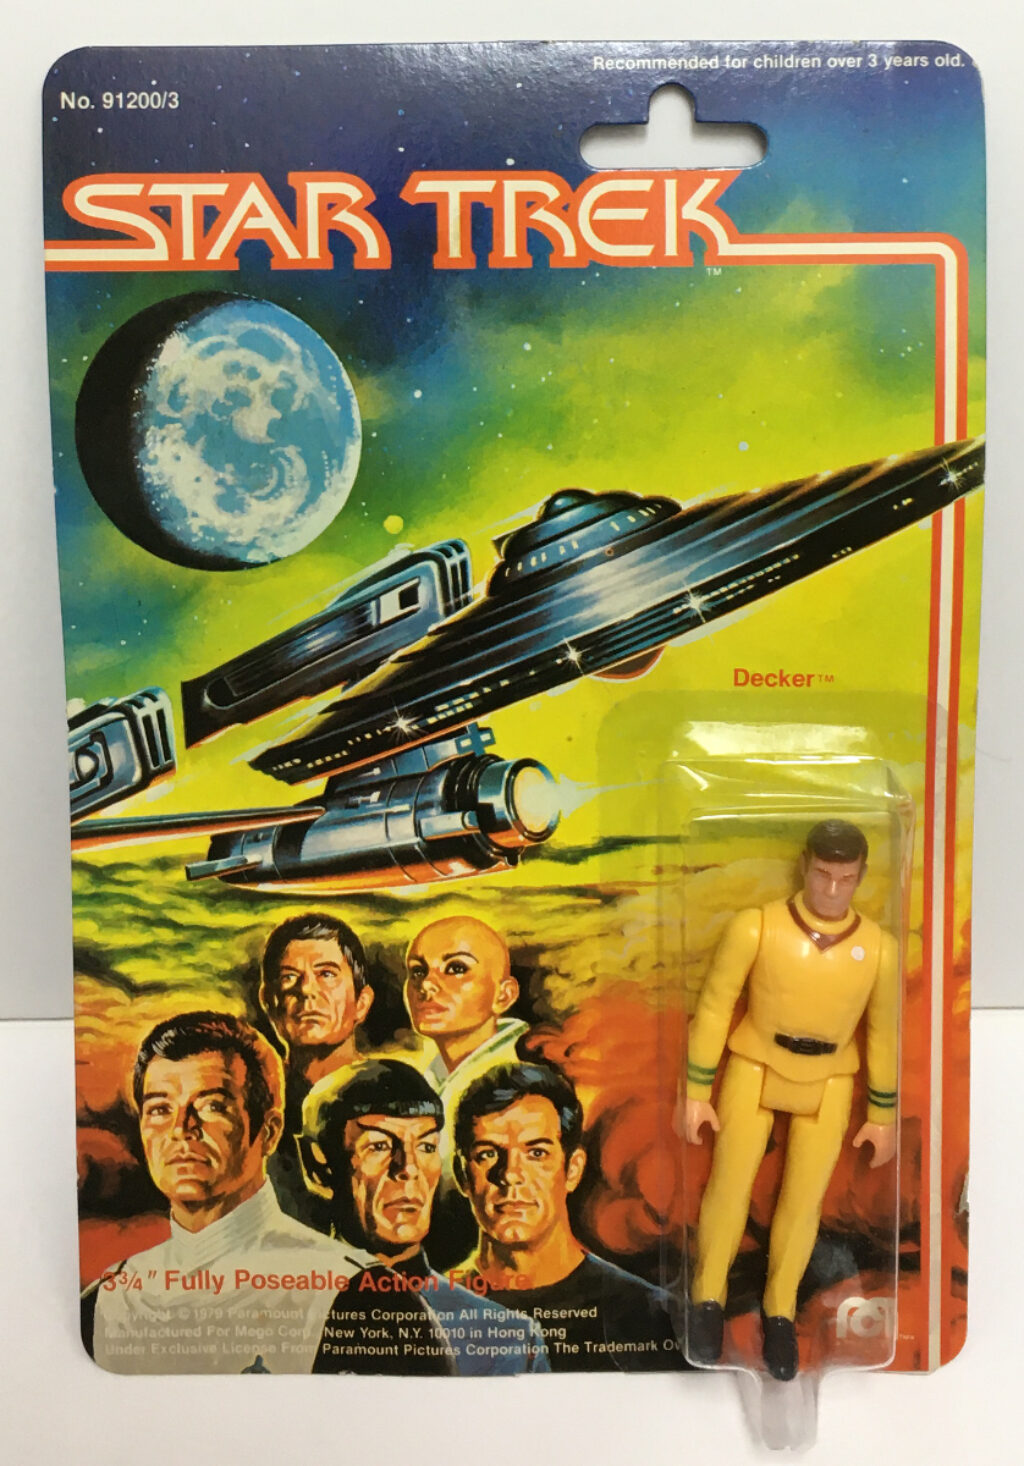 mego star trek the motion picture decker action figure 1